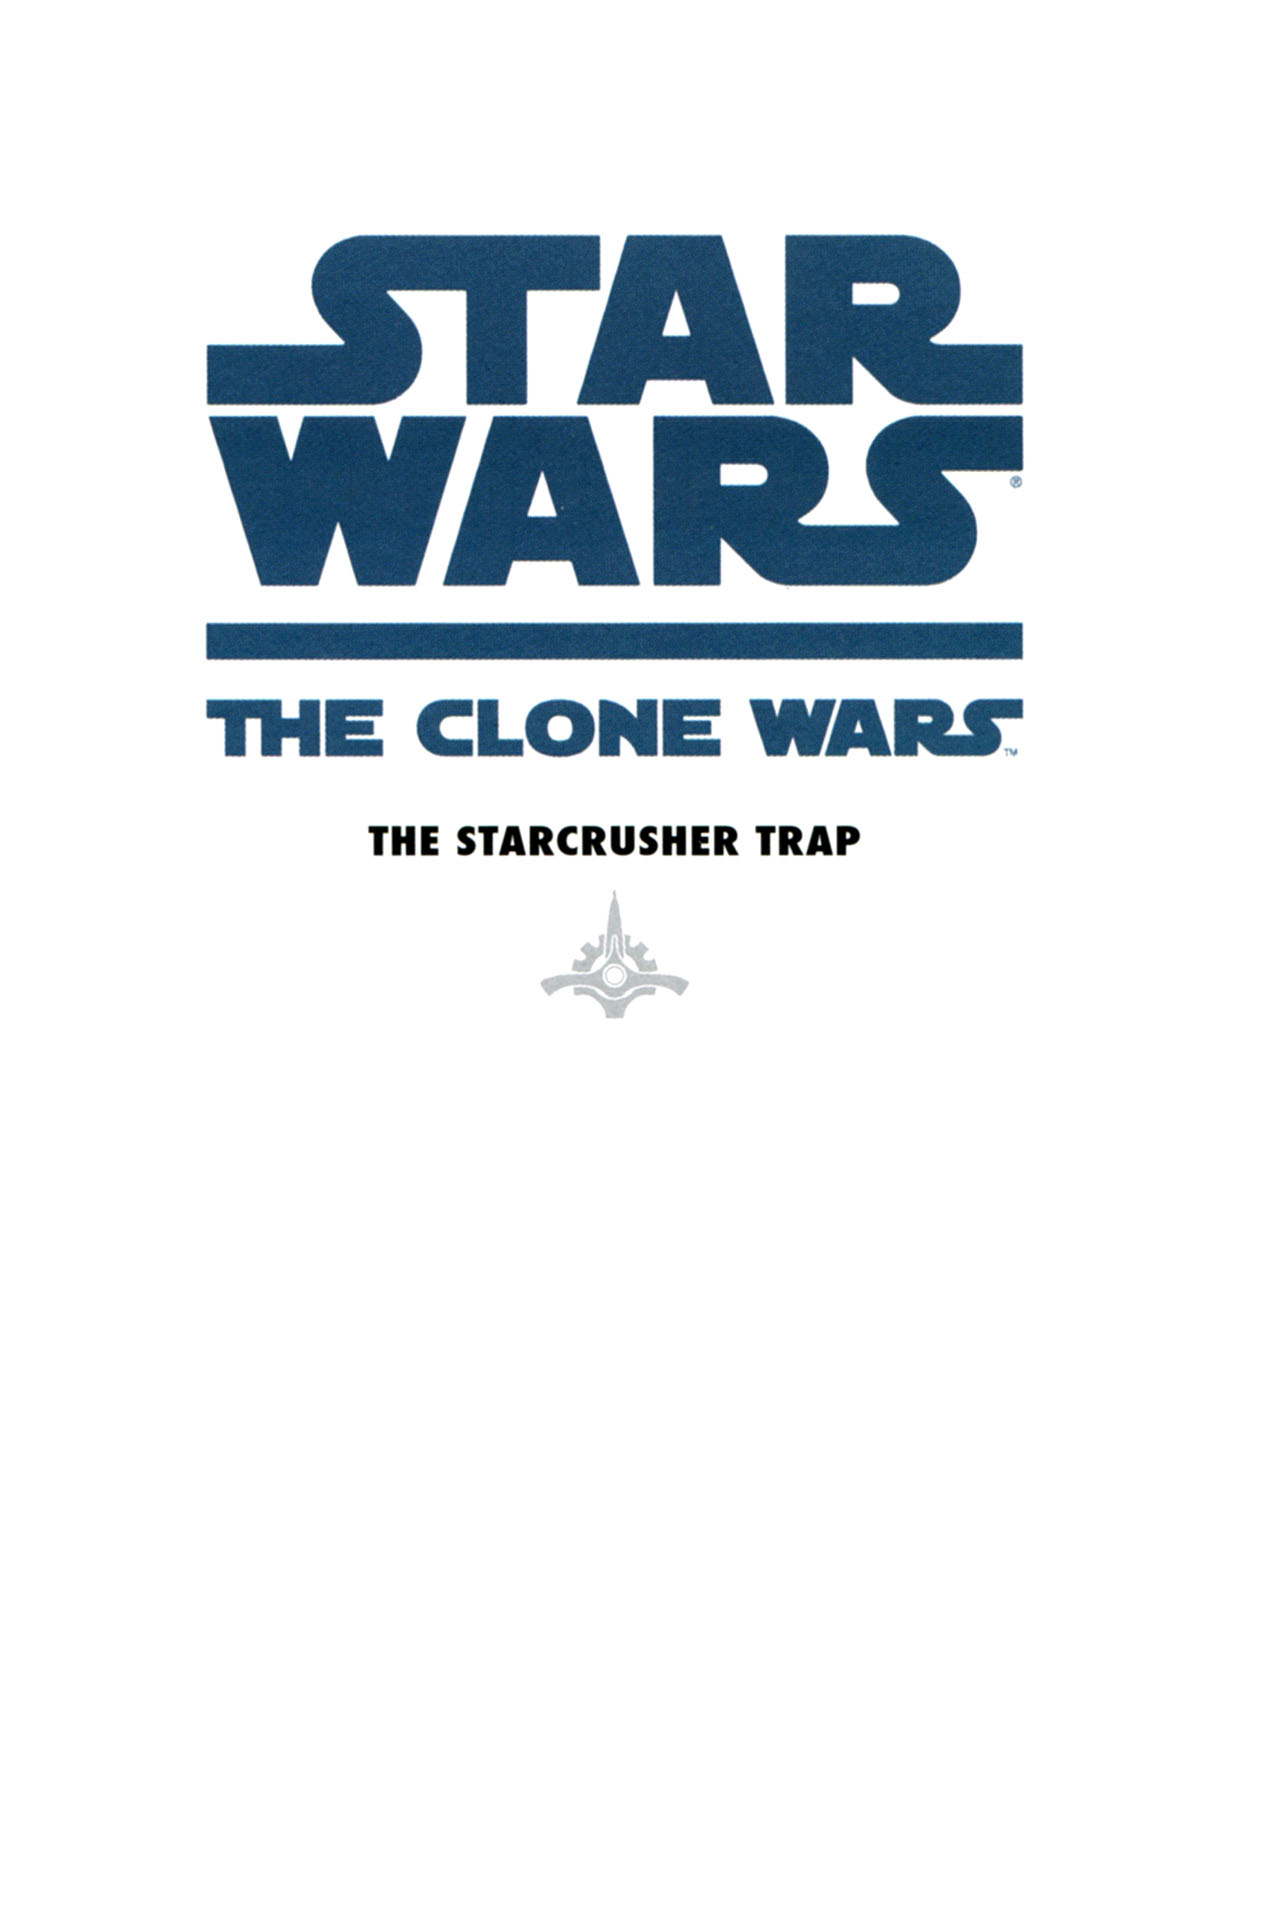 Read online Star Wars: The Clone Wars - The Starcrusher Trap comic -  Issue # Full - 3